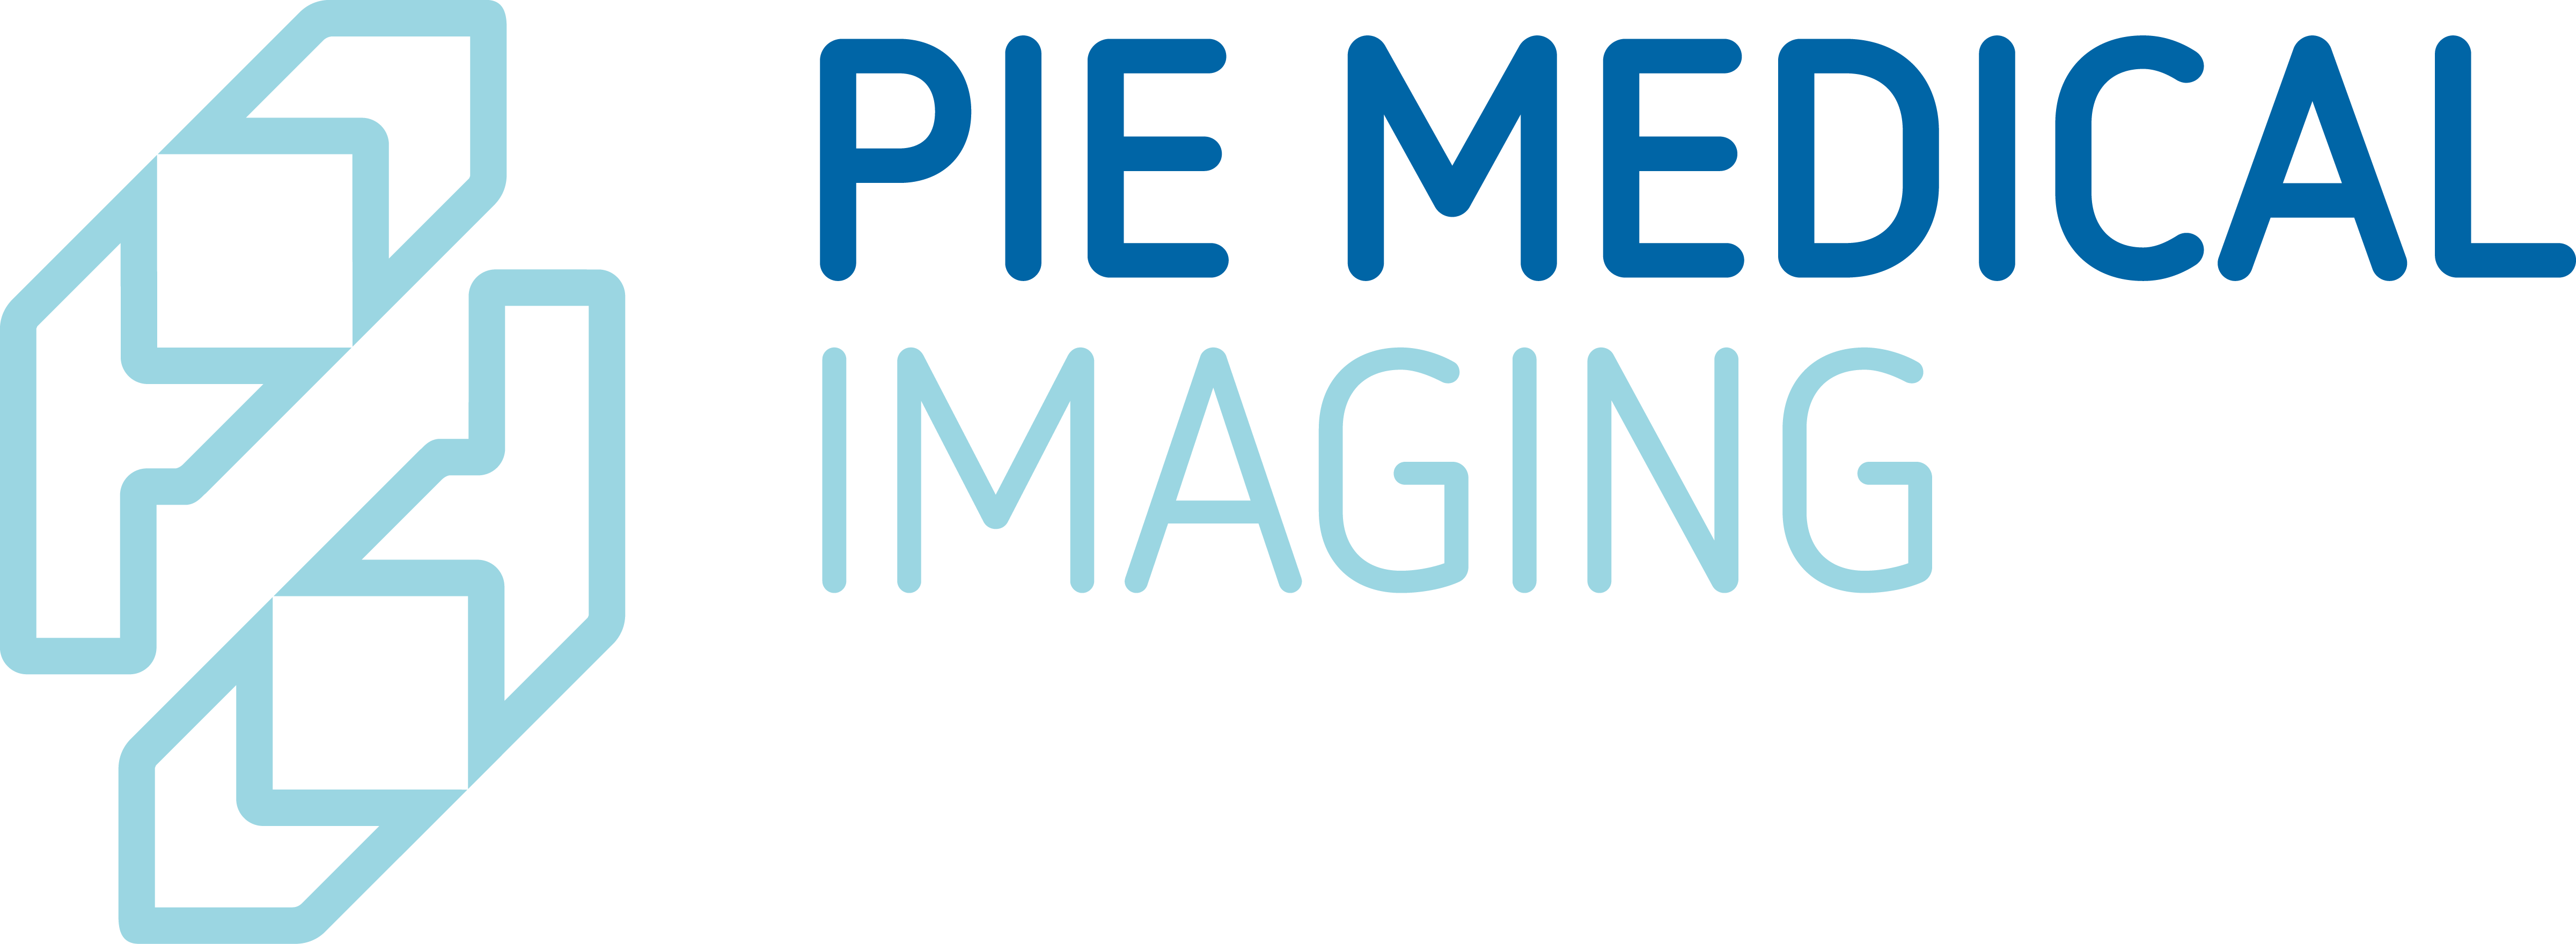 PIE Medical Imaging